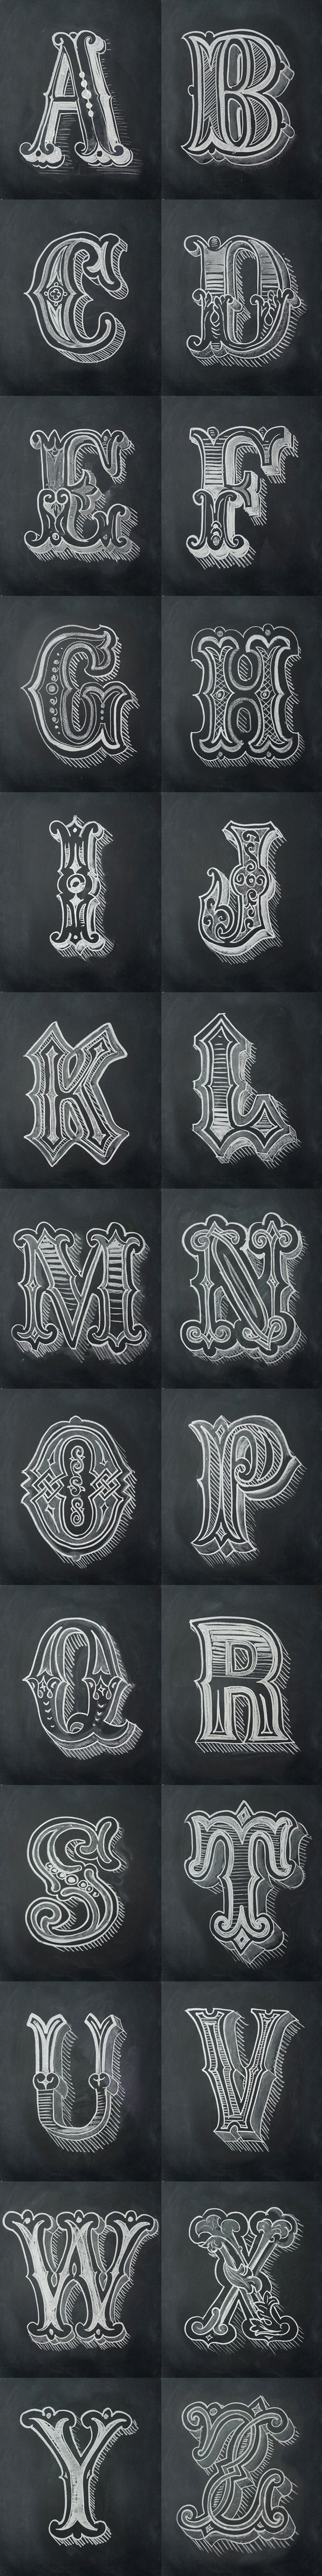 Chalk Alphabet by Antonio Rodrigues Jr